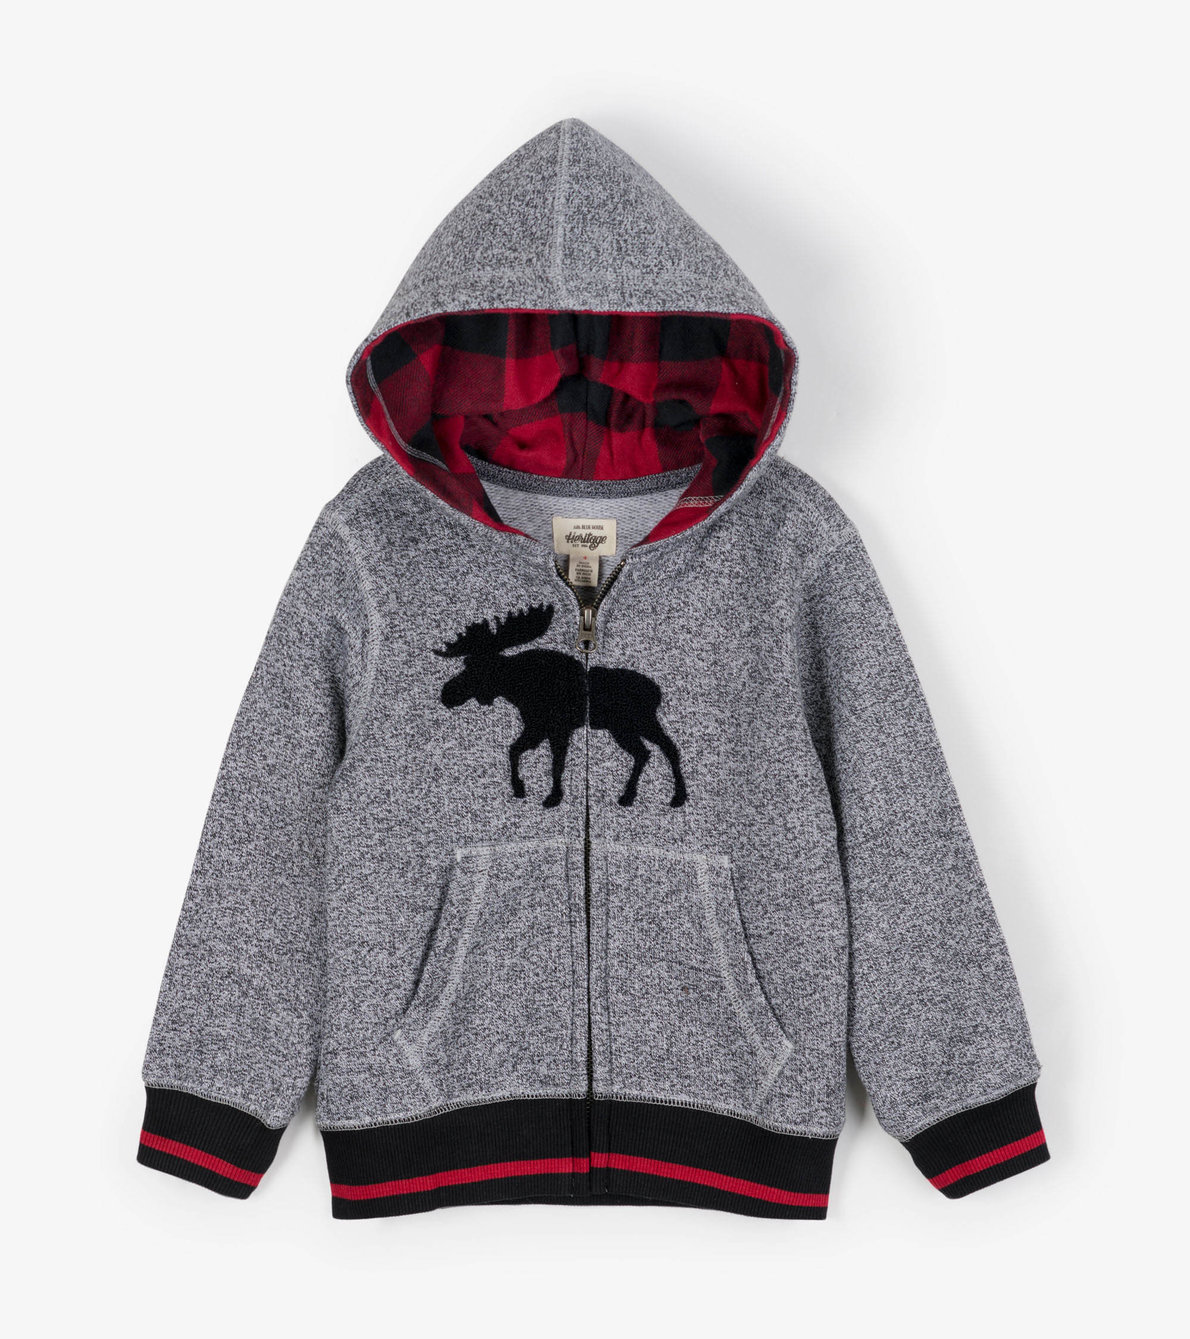 View larger image of Grey Moose Kids Heritage Full Zip Hoodie